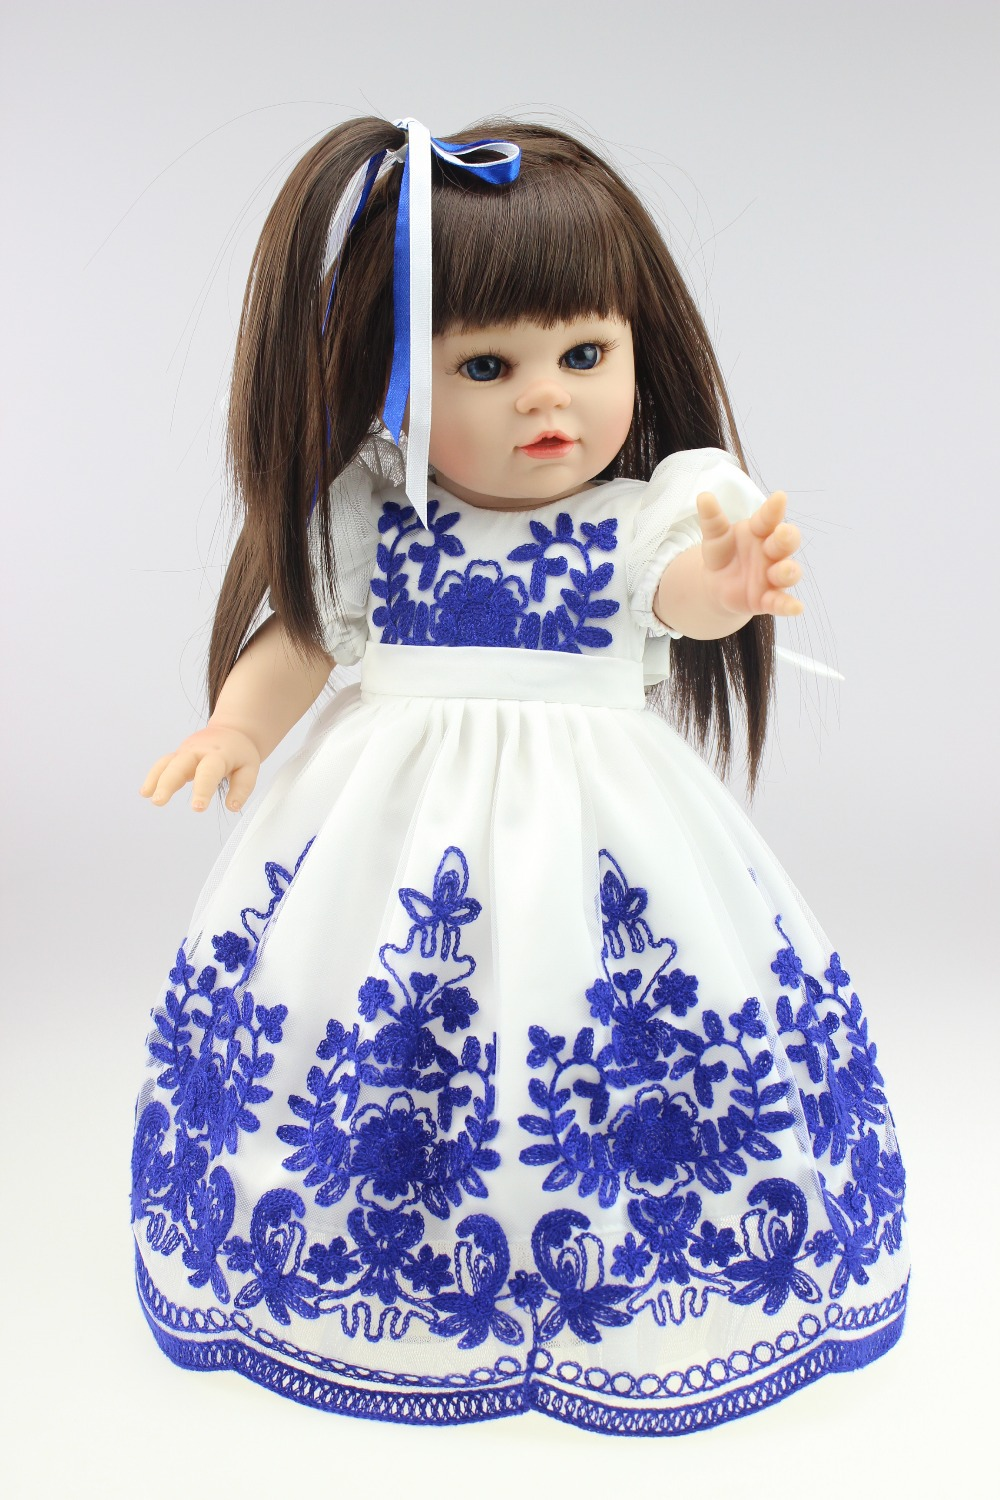 New design full vinyl doll free shipping american doll Dollie& me fashion doll Our generation(China (Mainland))